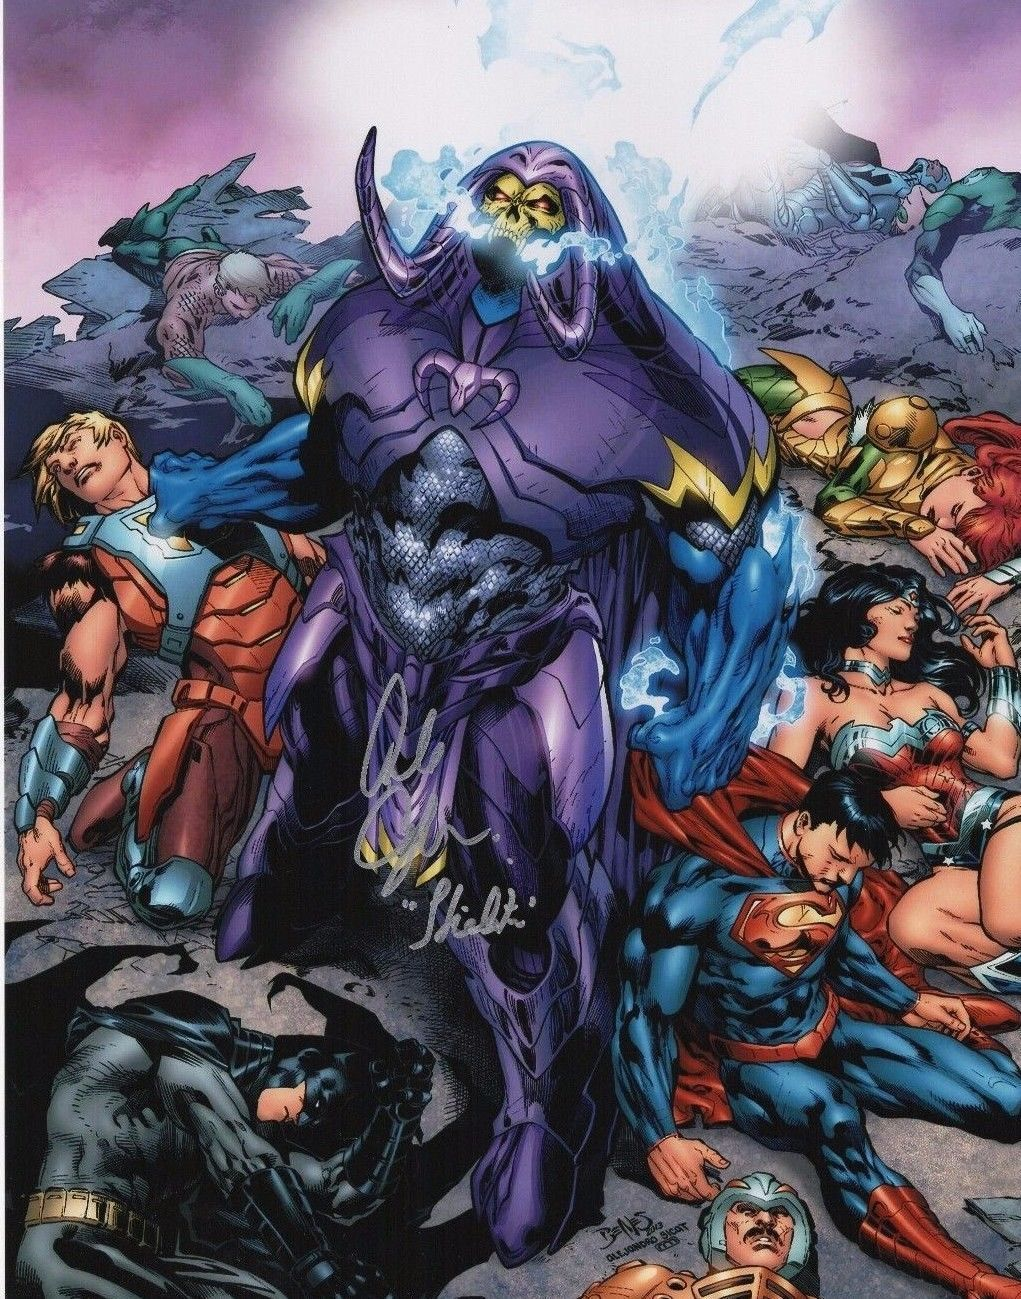 Alan Oppenheimer Autograph 11x14 Photo Masters Of The Universe Skeletor Coa Masters Of The Universe Comics Dc Comics Characters Born on 23rd april, 1930 in new york, new york. pinterest